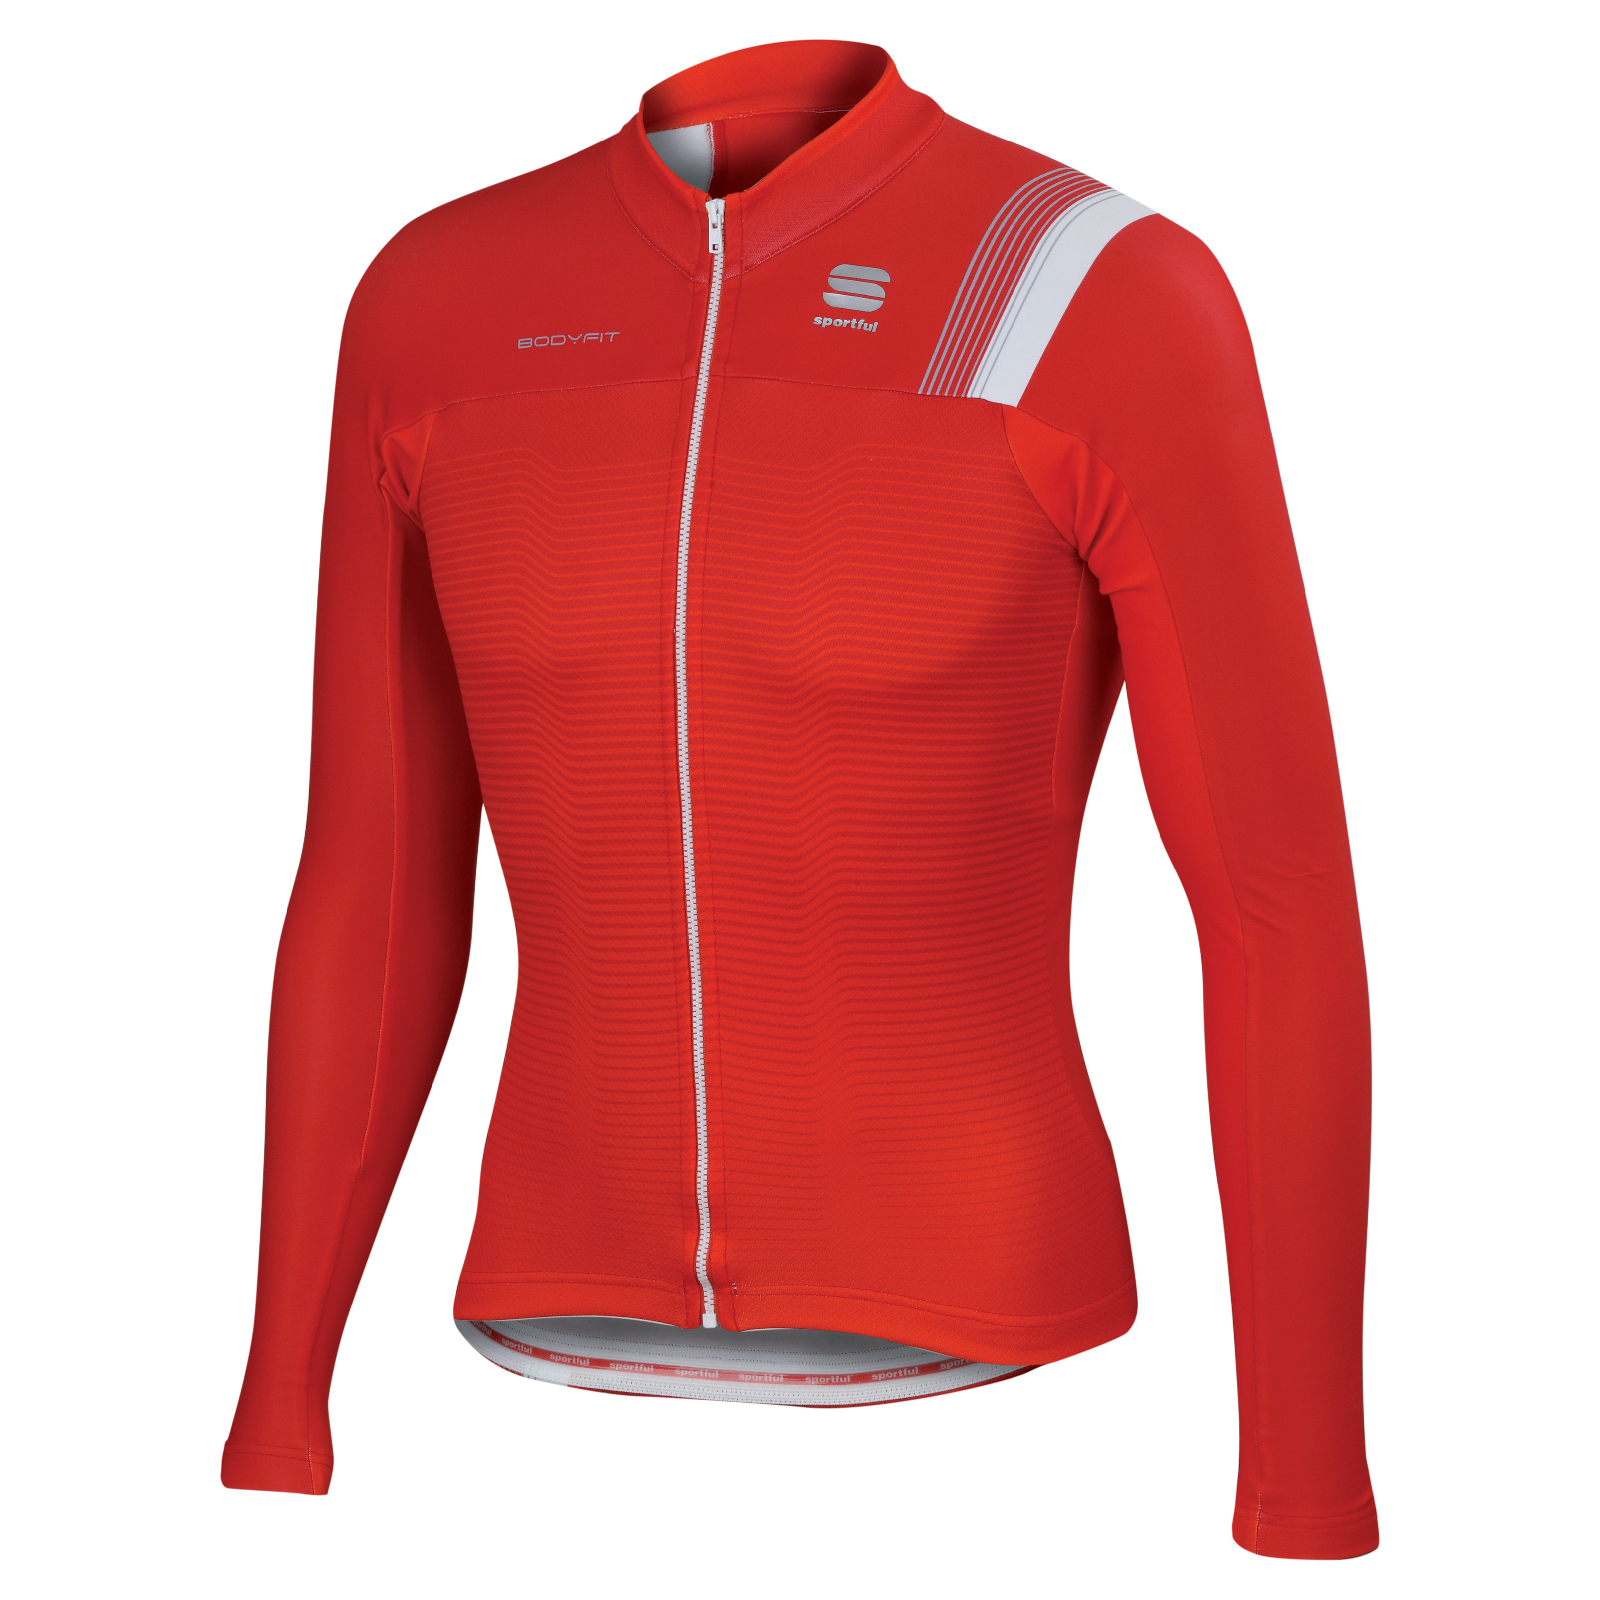 f1a1a8499 Sportful BodyFit Pro Thermal Long Sleeve Jersey - Red